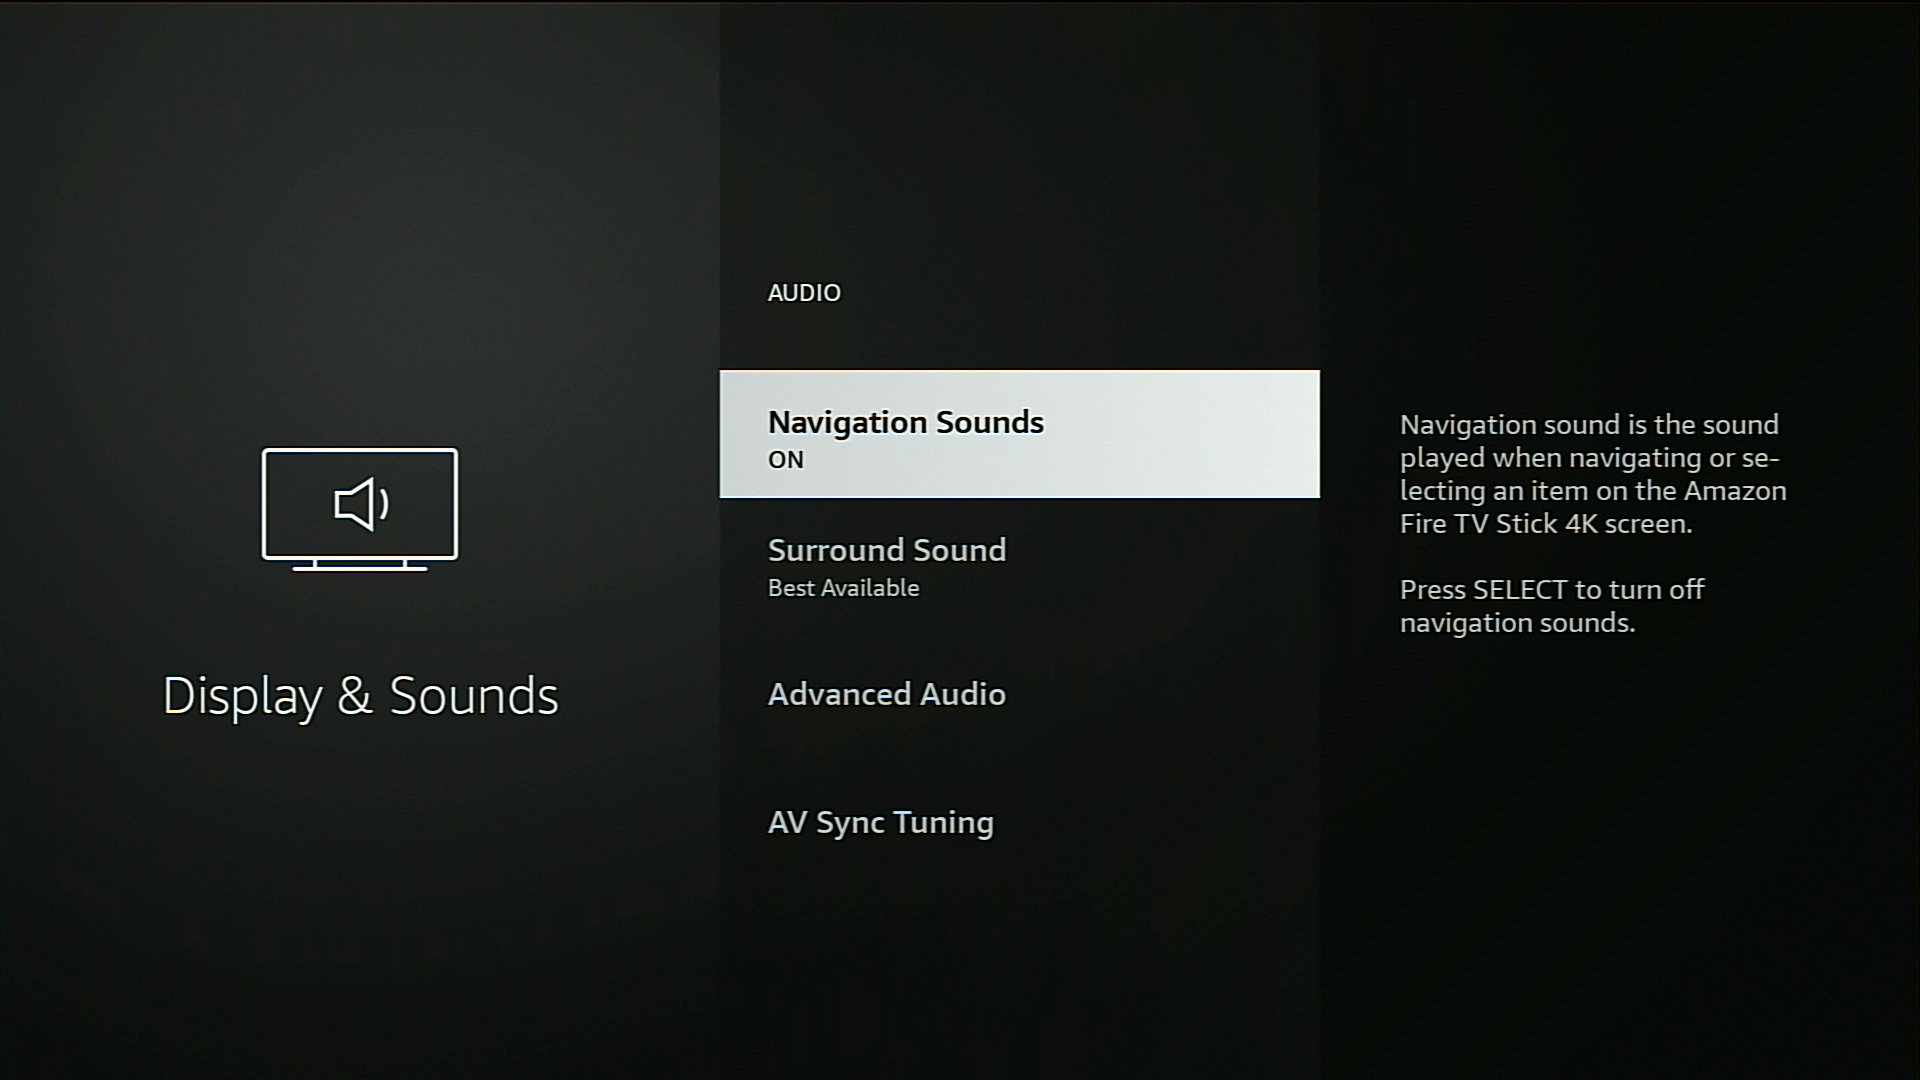 turn off navagational sounds